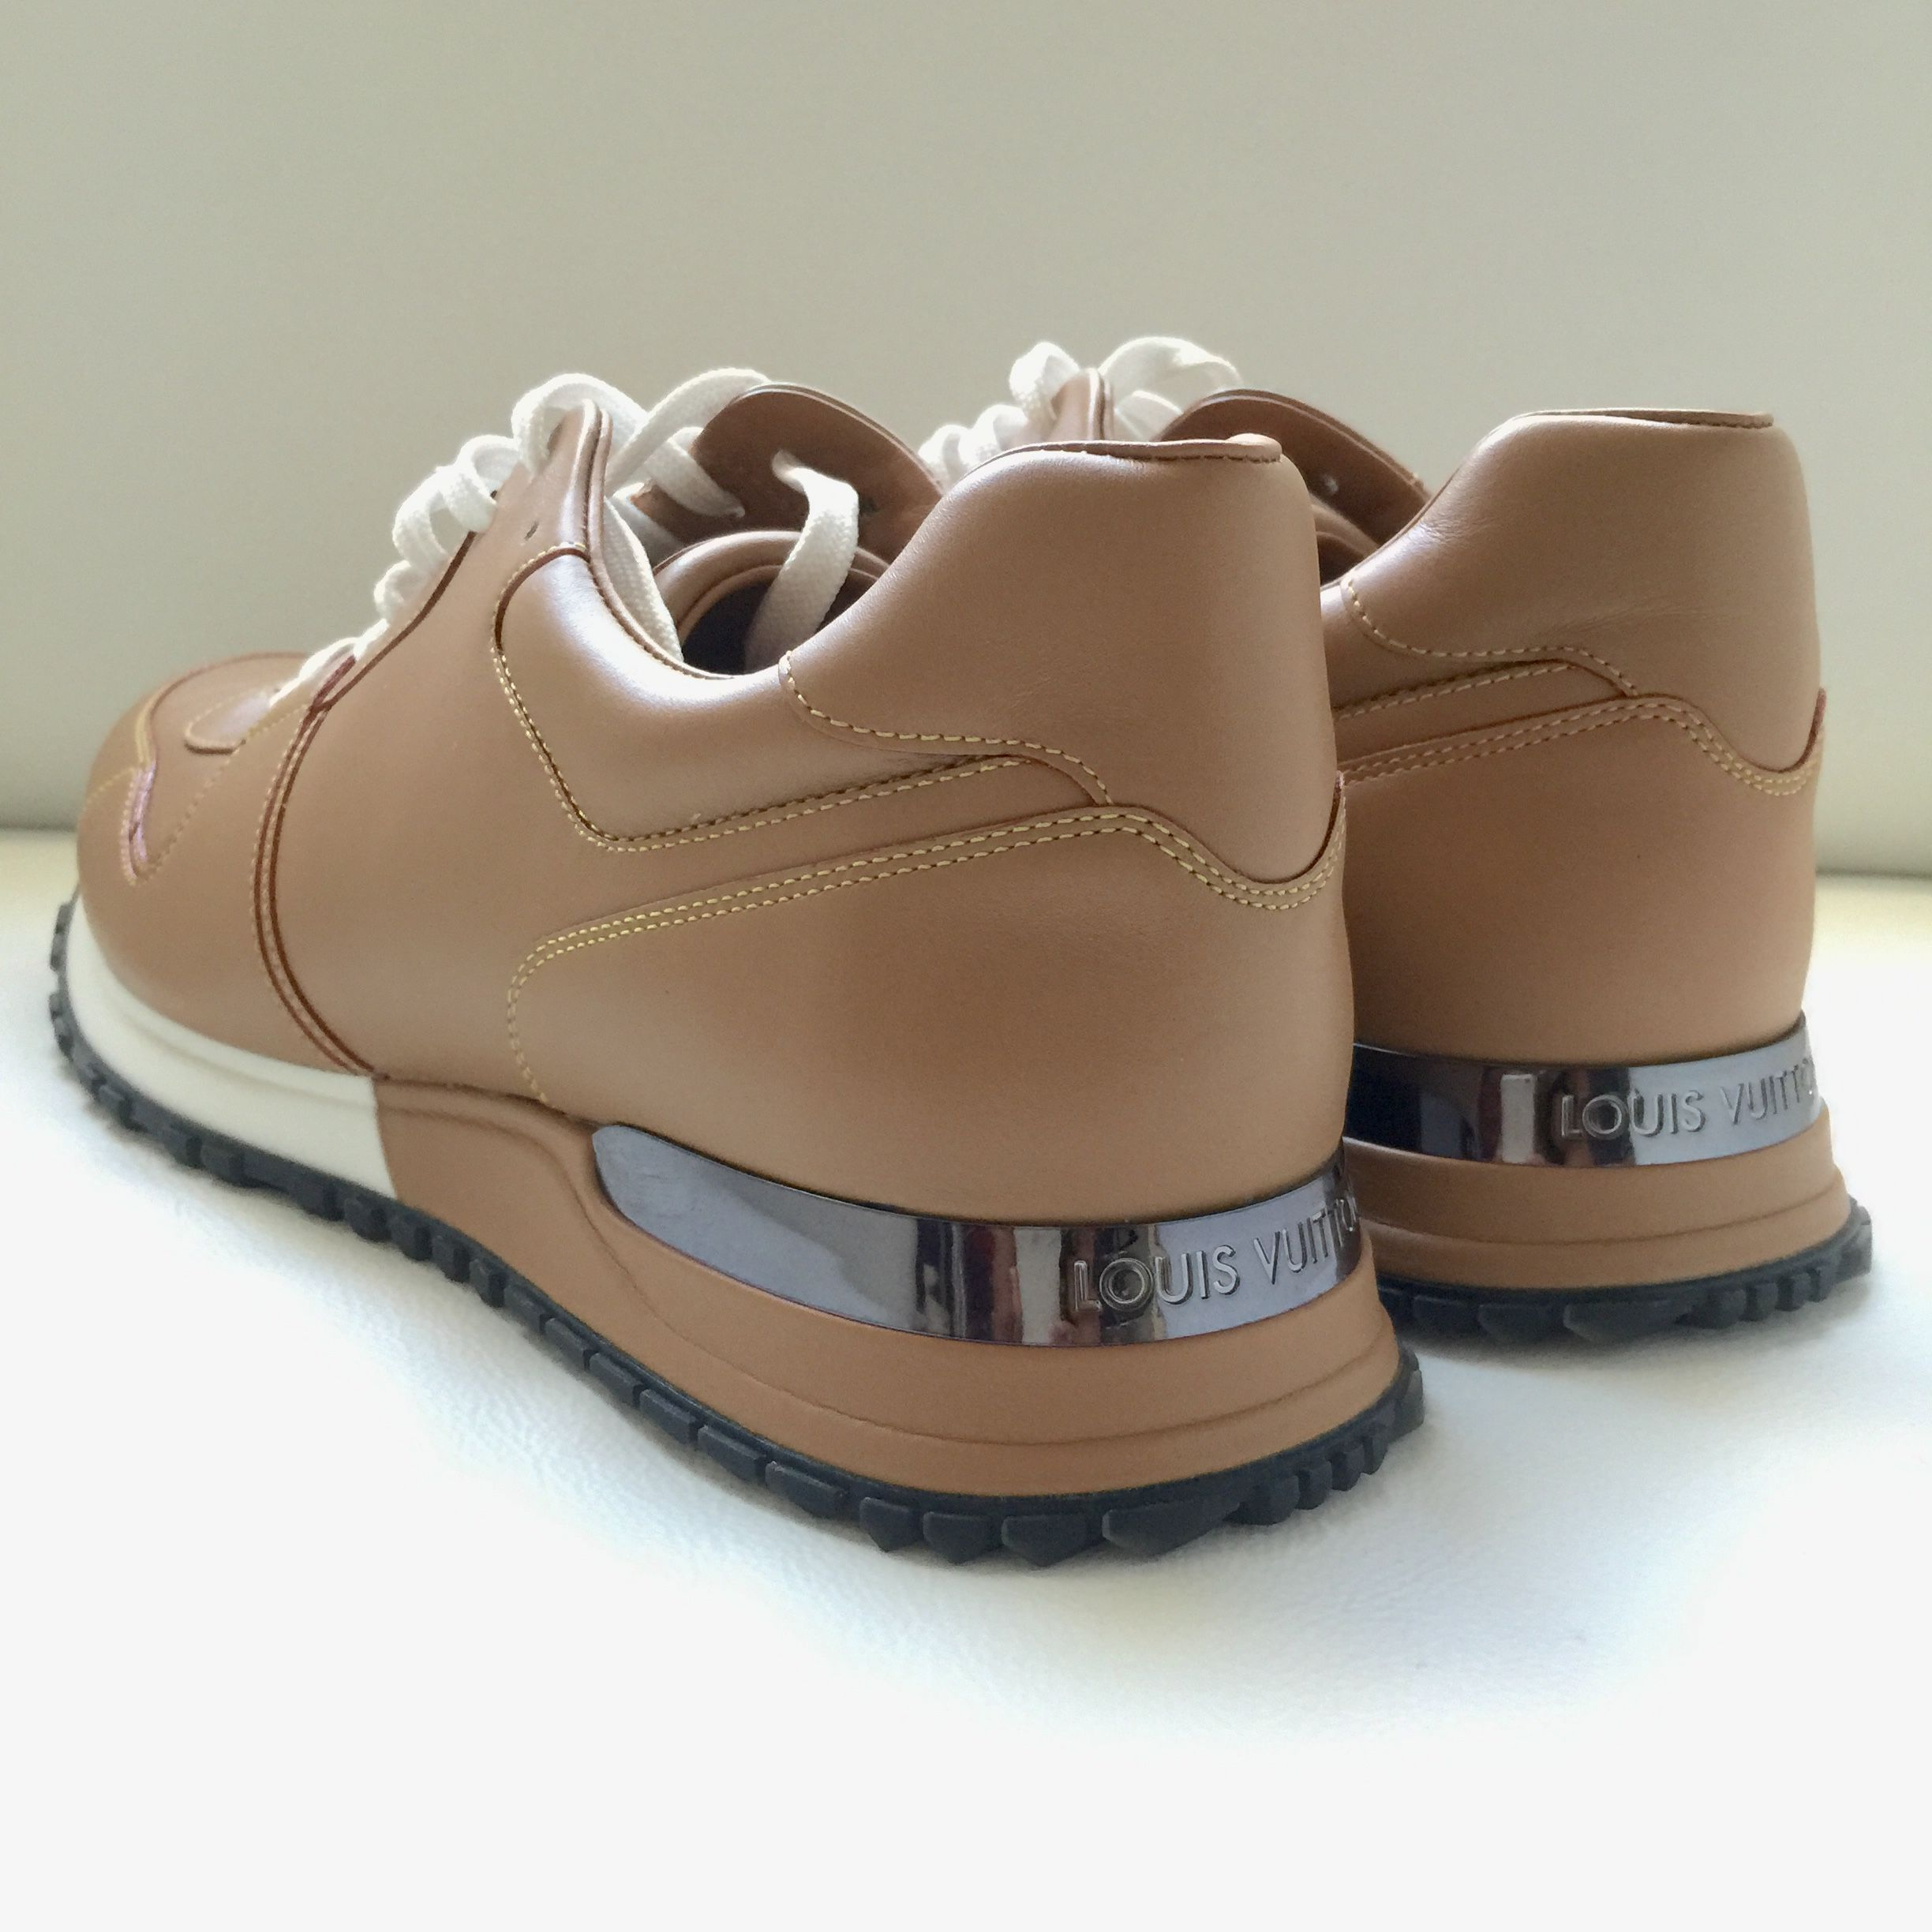 camel leather run away s mens sneakers louis vuitton fall